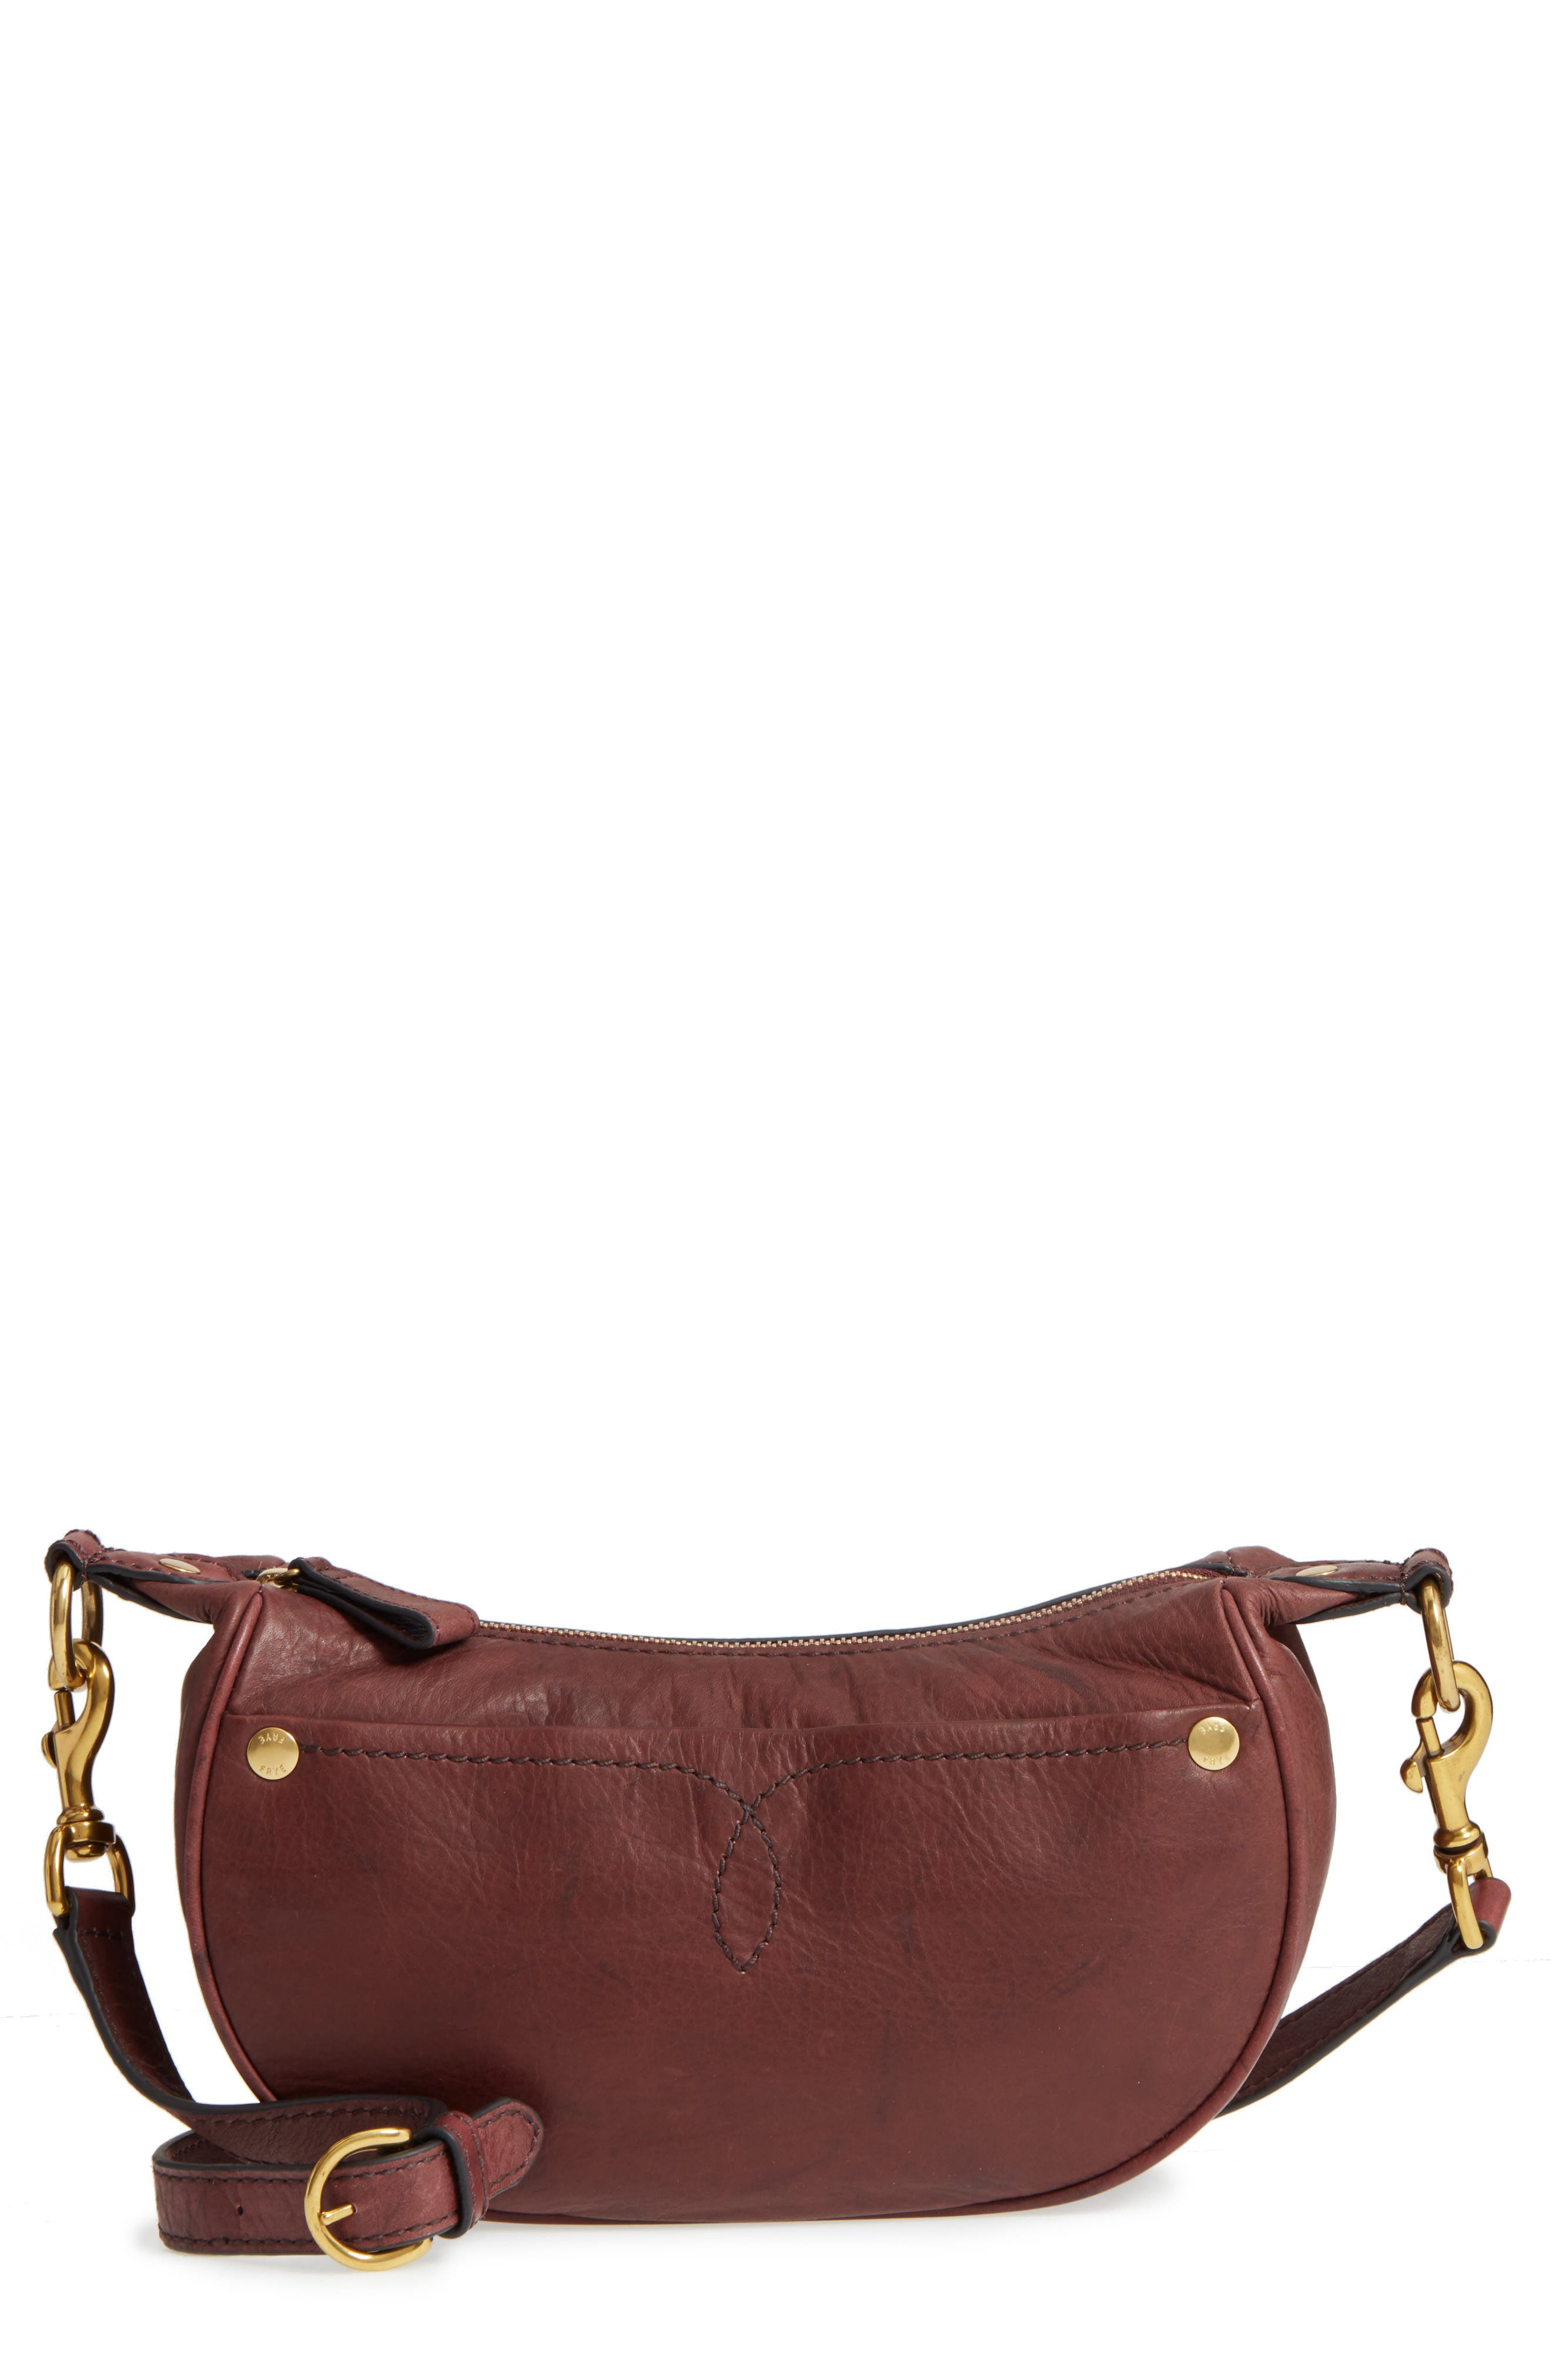 Small Campus Leather Crossbody Bag,                         Main,                         color, 210